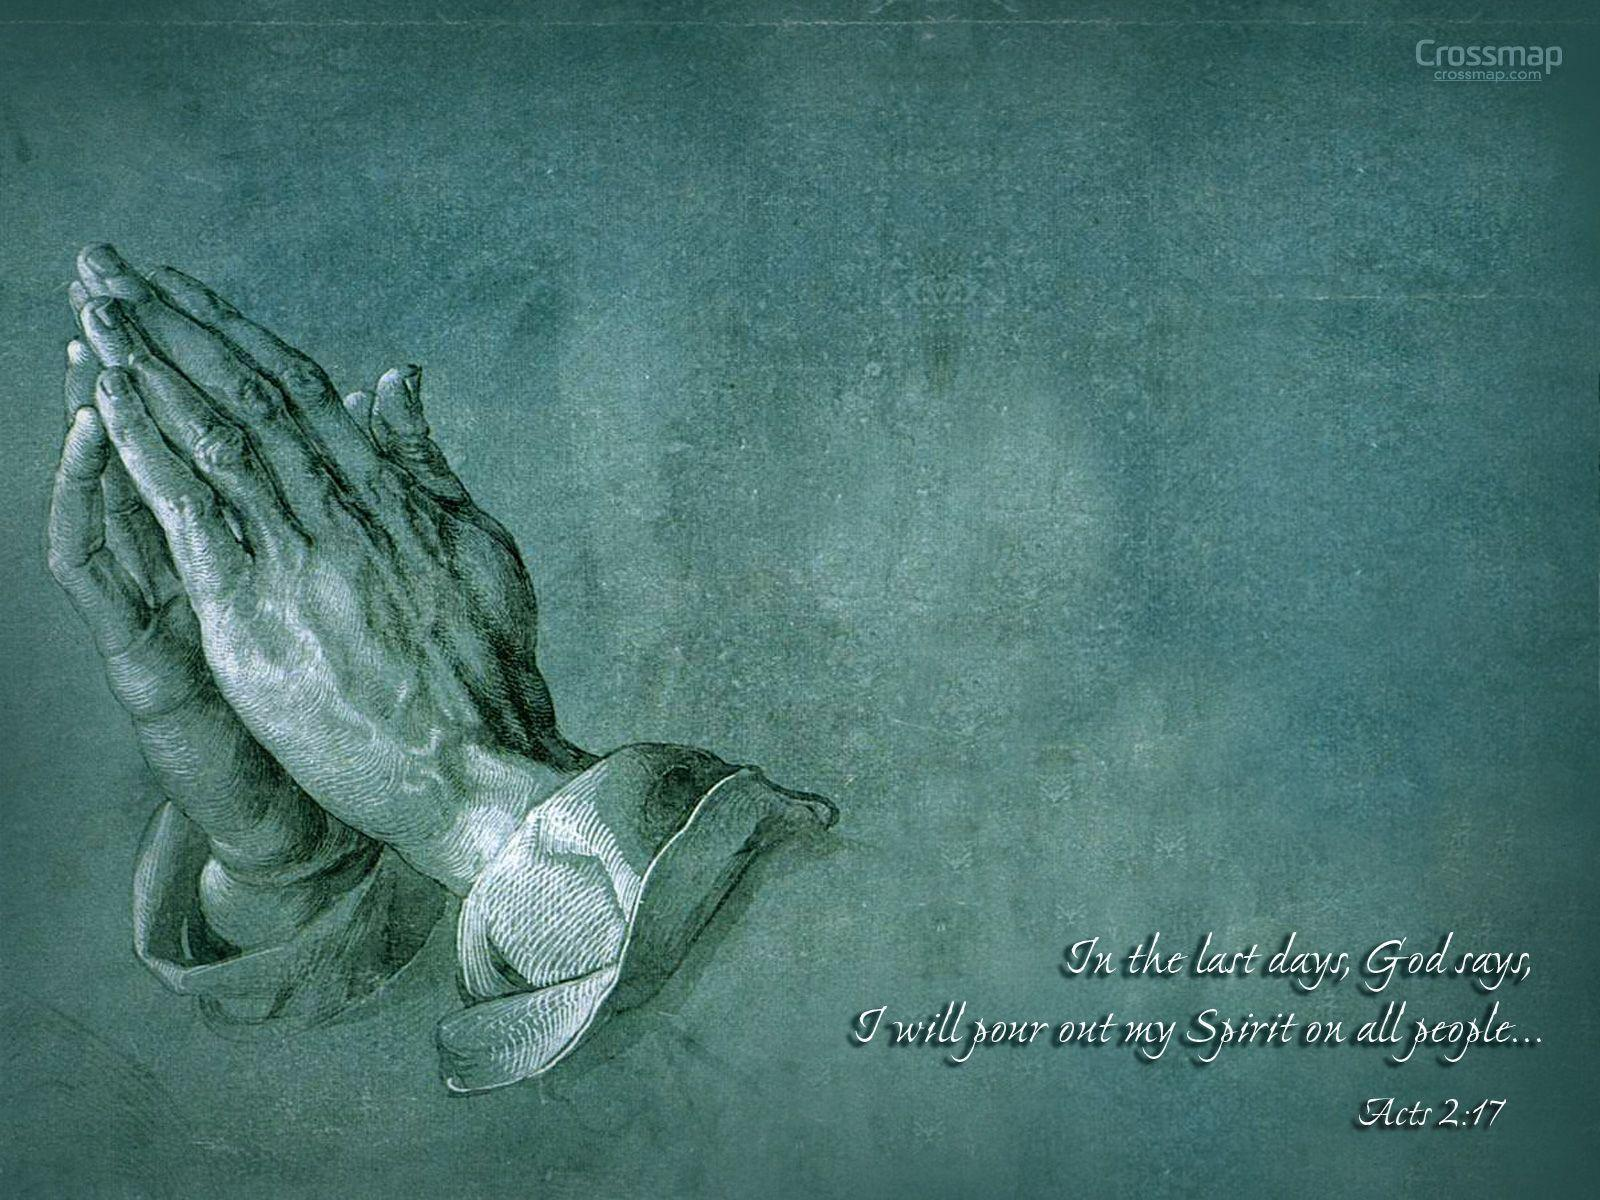 Lord Buddha Animated Wallpapers Praying Hands Wallpapers Wallpaper Cave